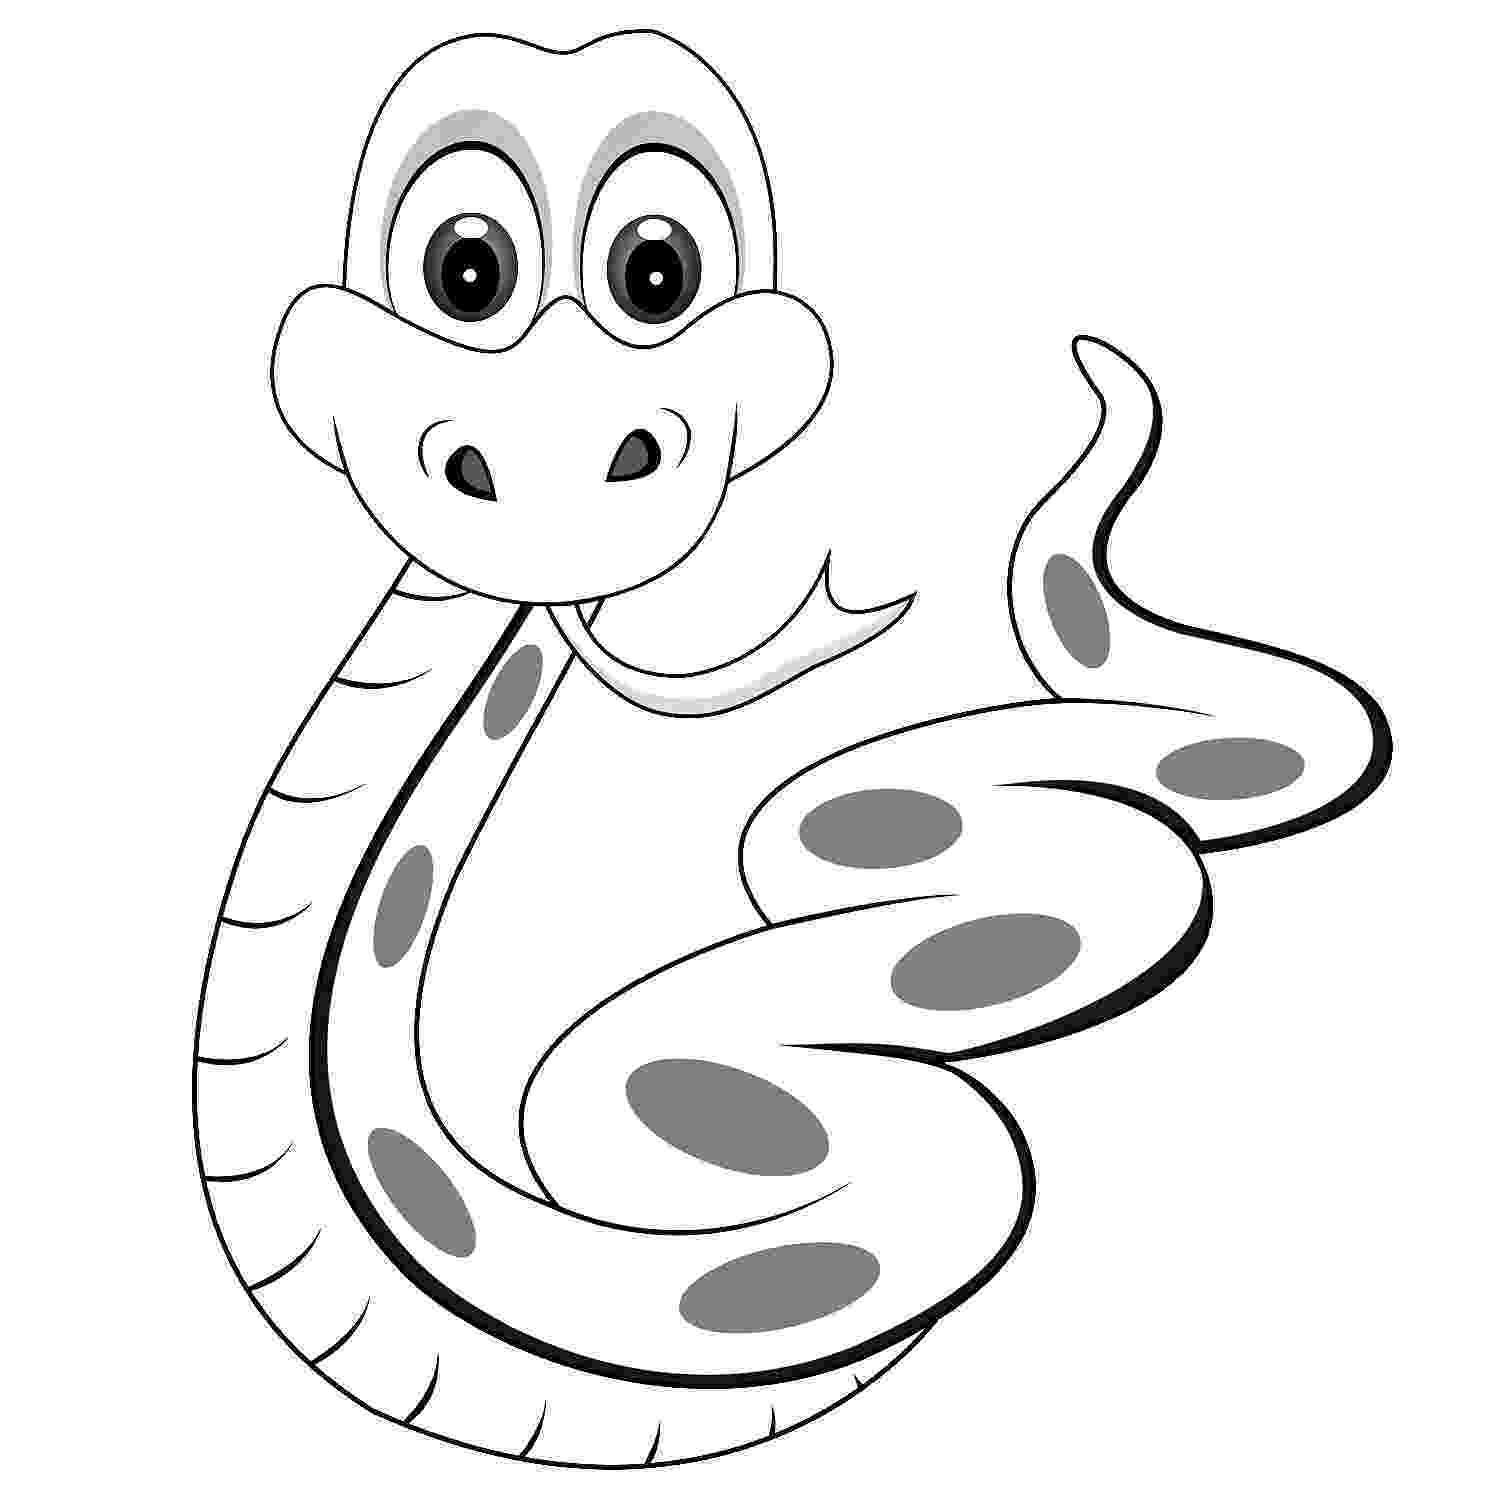 coloring pictures of snakes snake coloring pages coloring pages to print pictures coloring of snakes